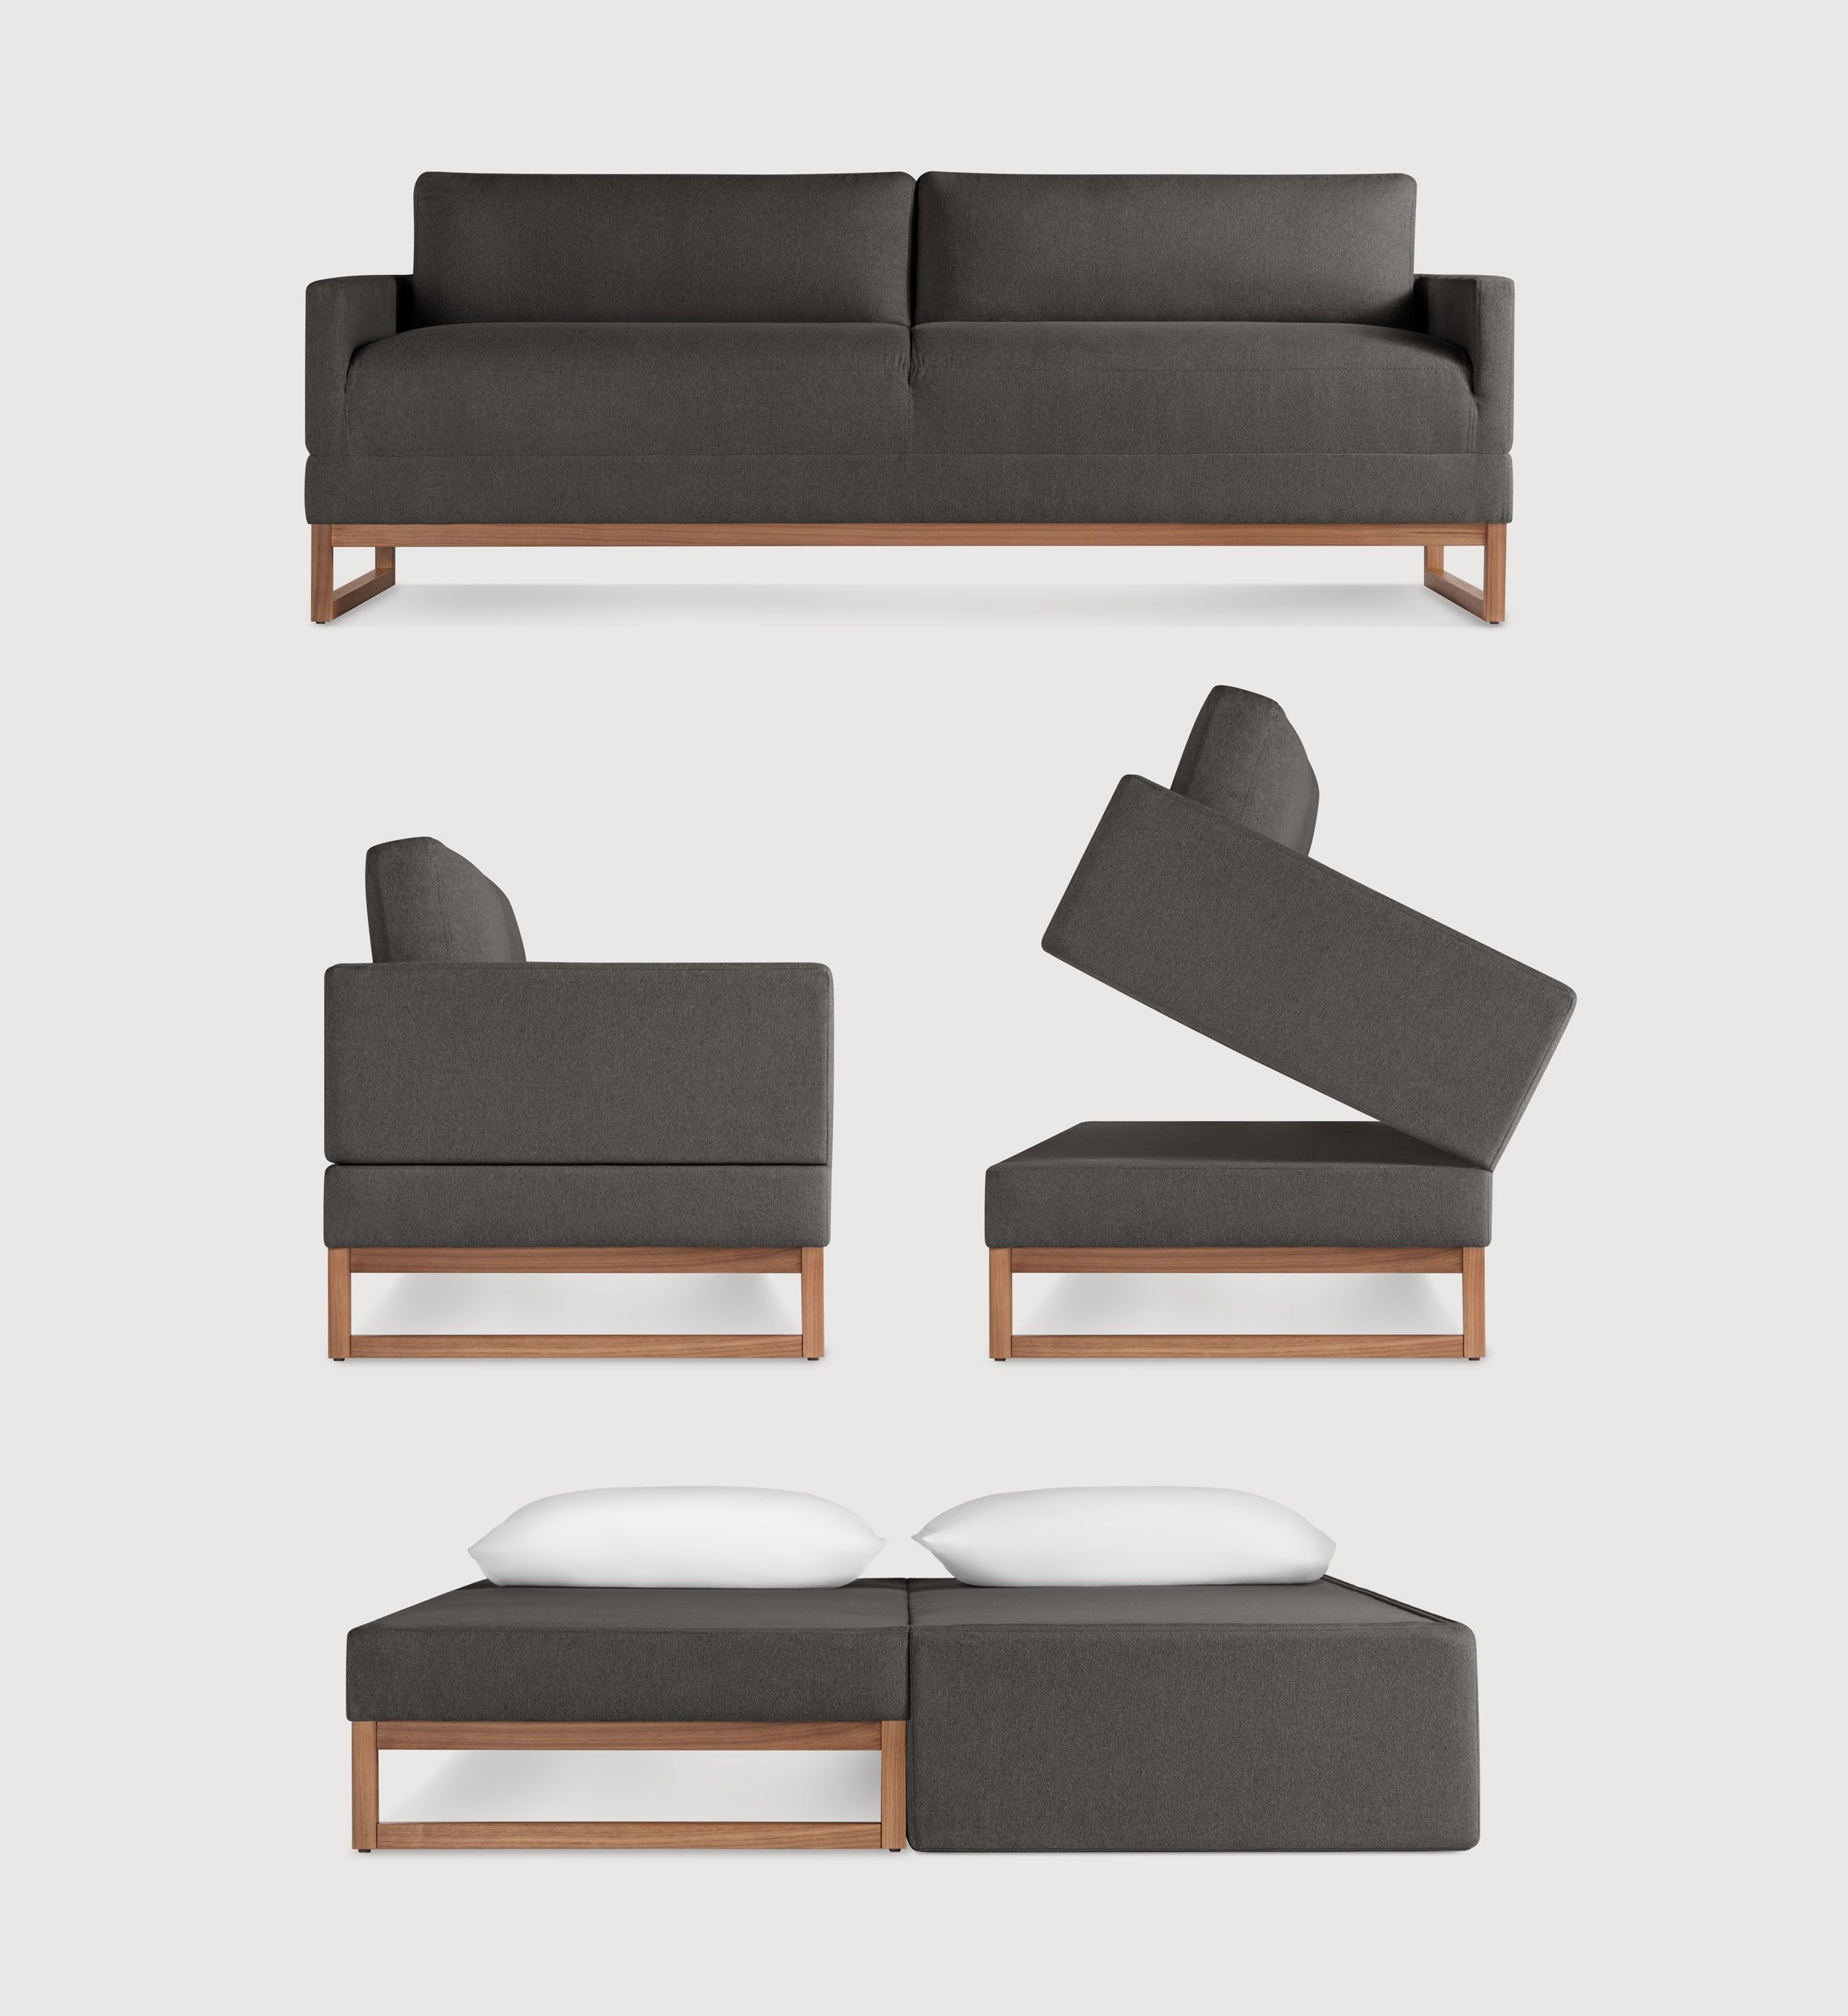 Wondrous The Diplomat Sleeper Sofa Packwood Charcoal Office Ocoug Best Dining Table And Chair Ideas Images Ocougorg